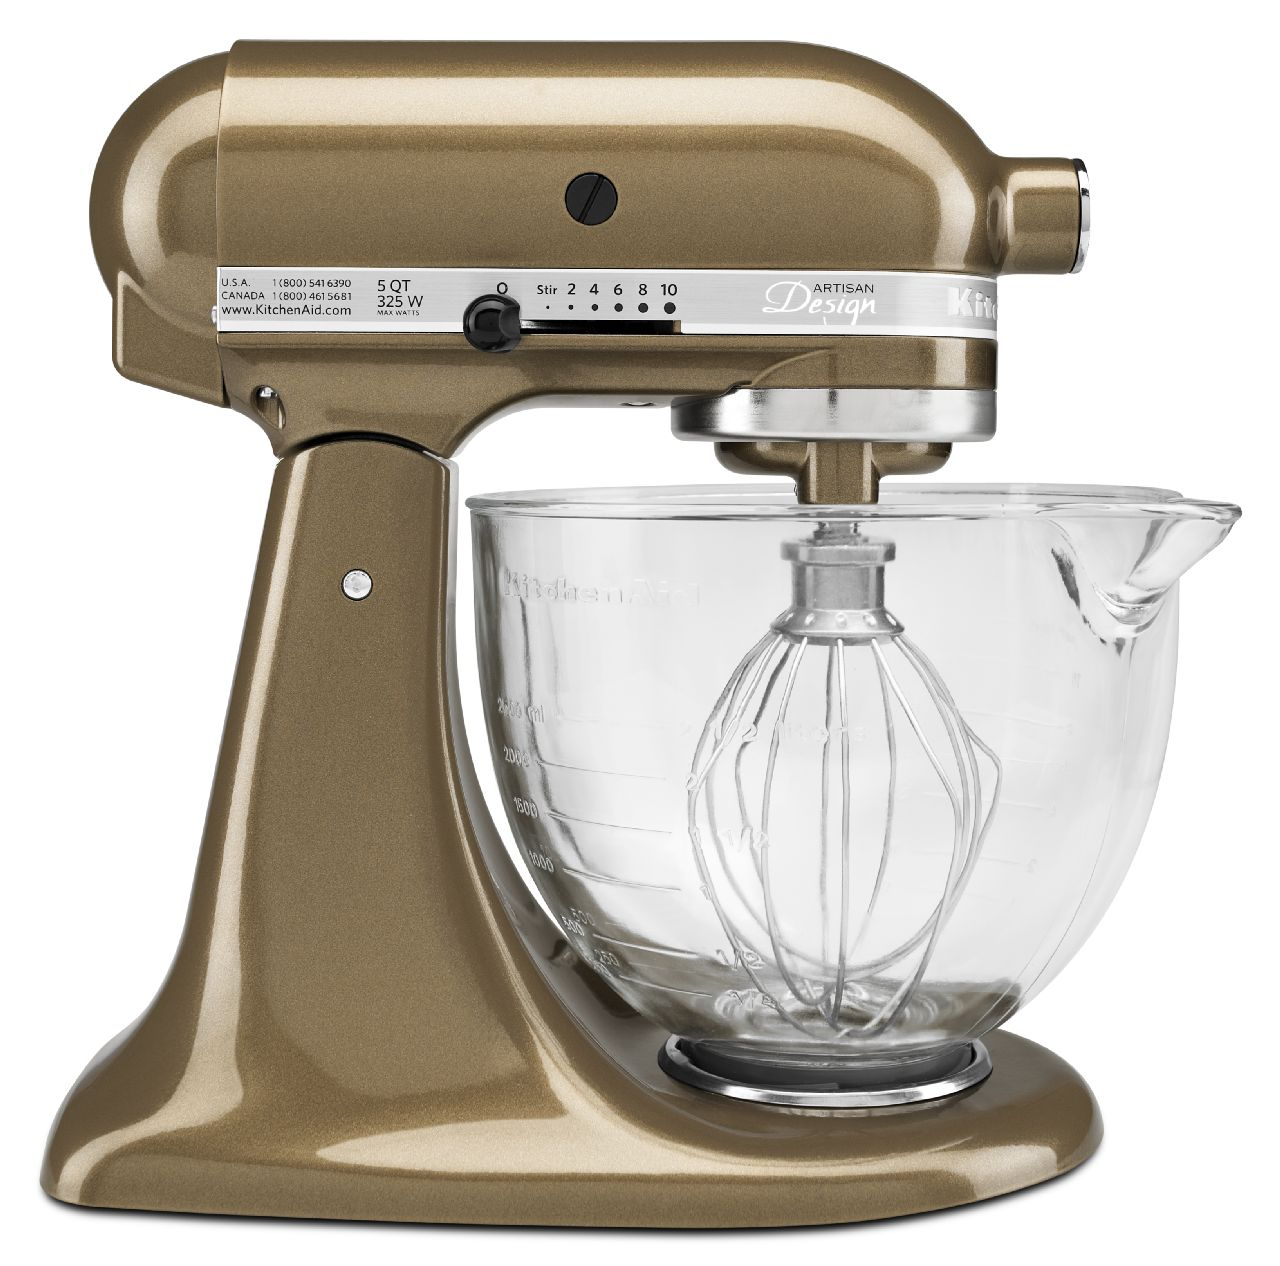 kitchenaid artisan design 5qt tilt head stand mixer glass bowl ksm155gb ebay. Black Bedroom Furniture Sets. Home Design Ideas